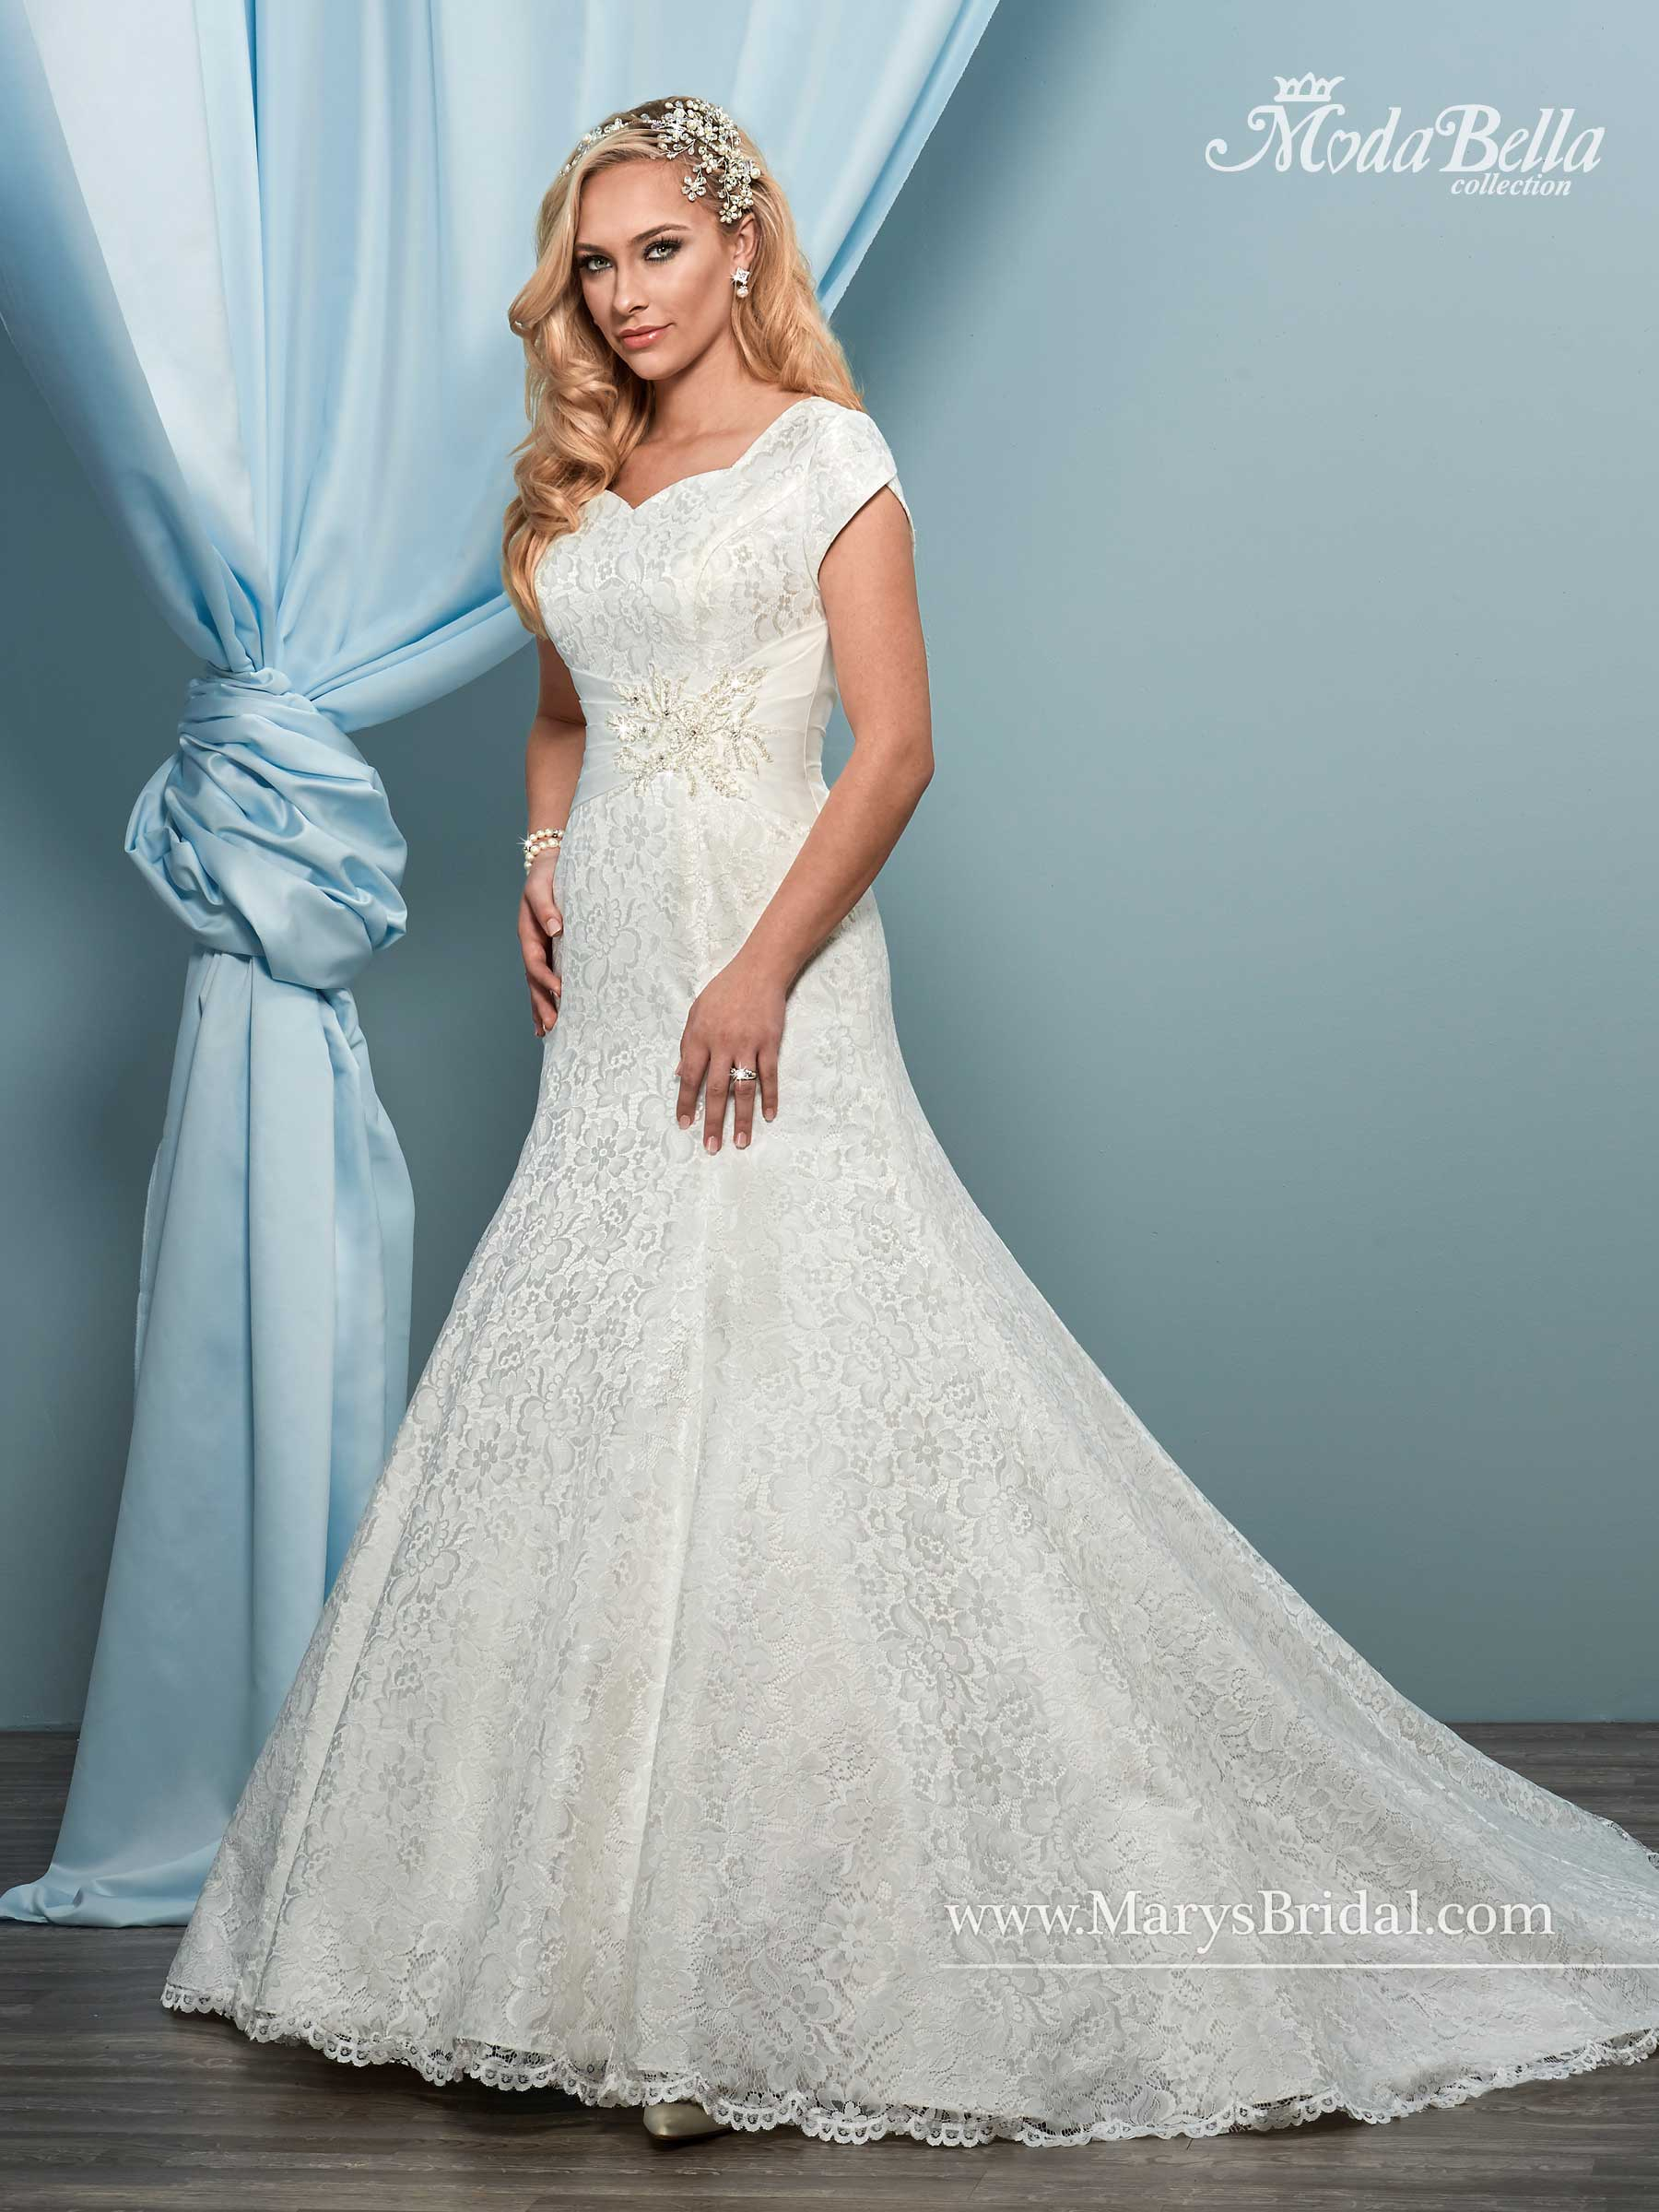 Bridal Dresses | Style - 3Y622 in Ivory or White Color